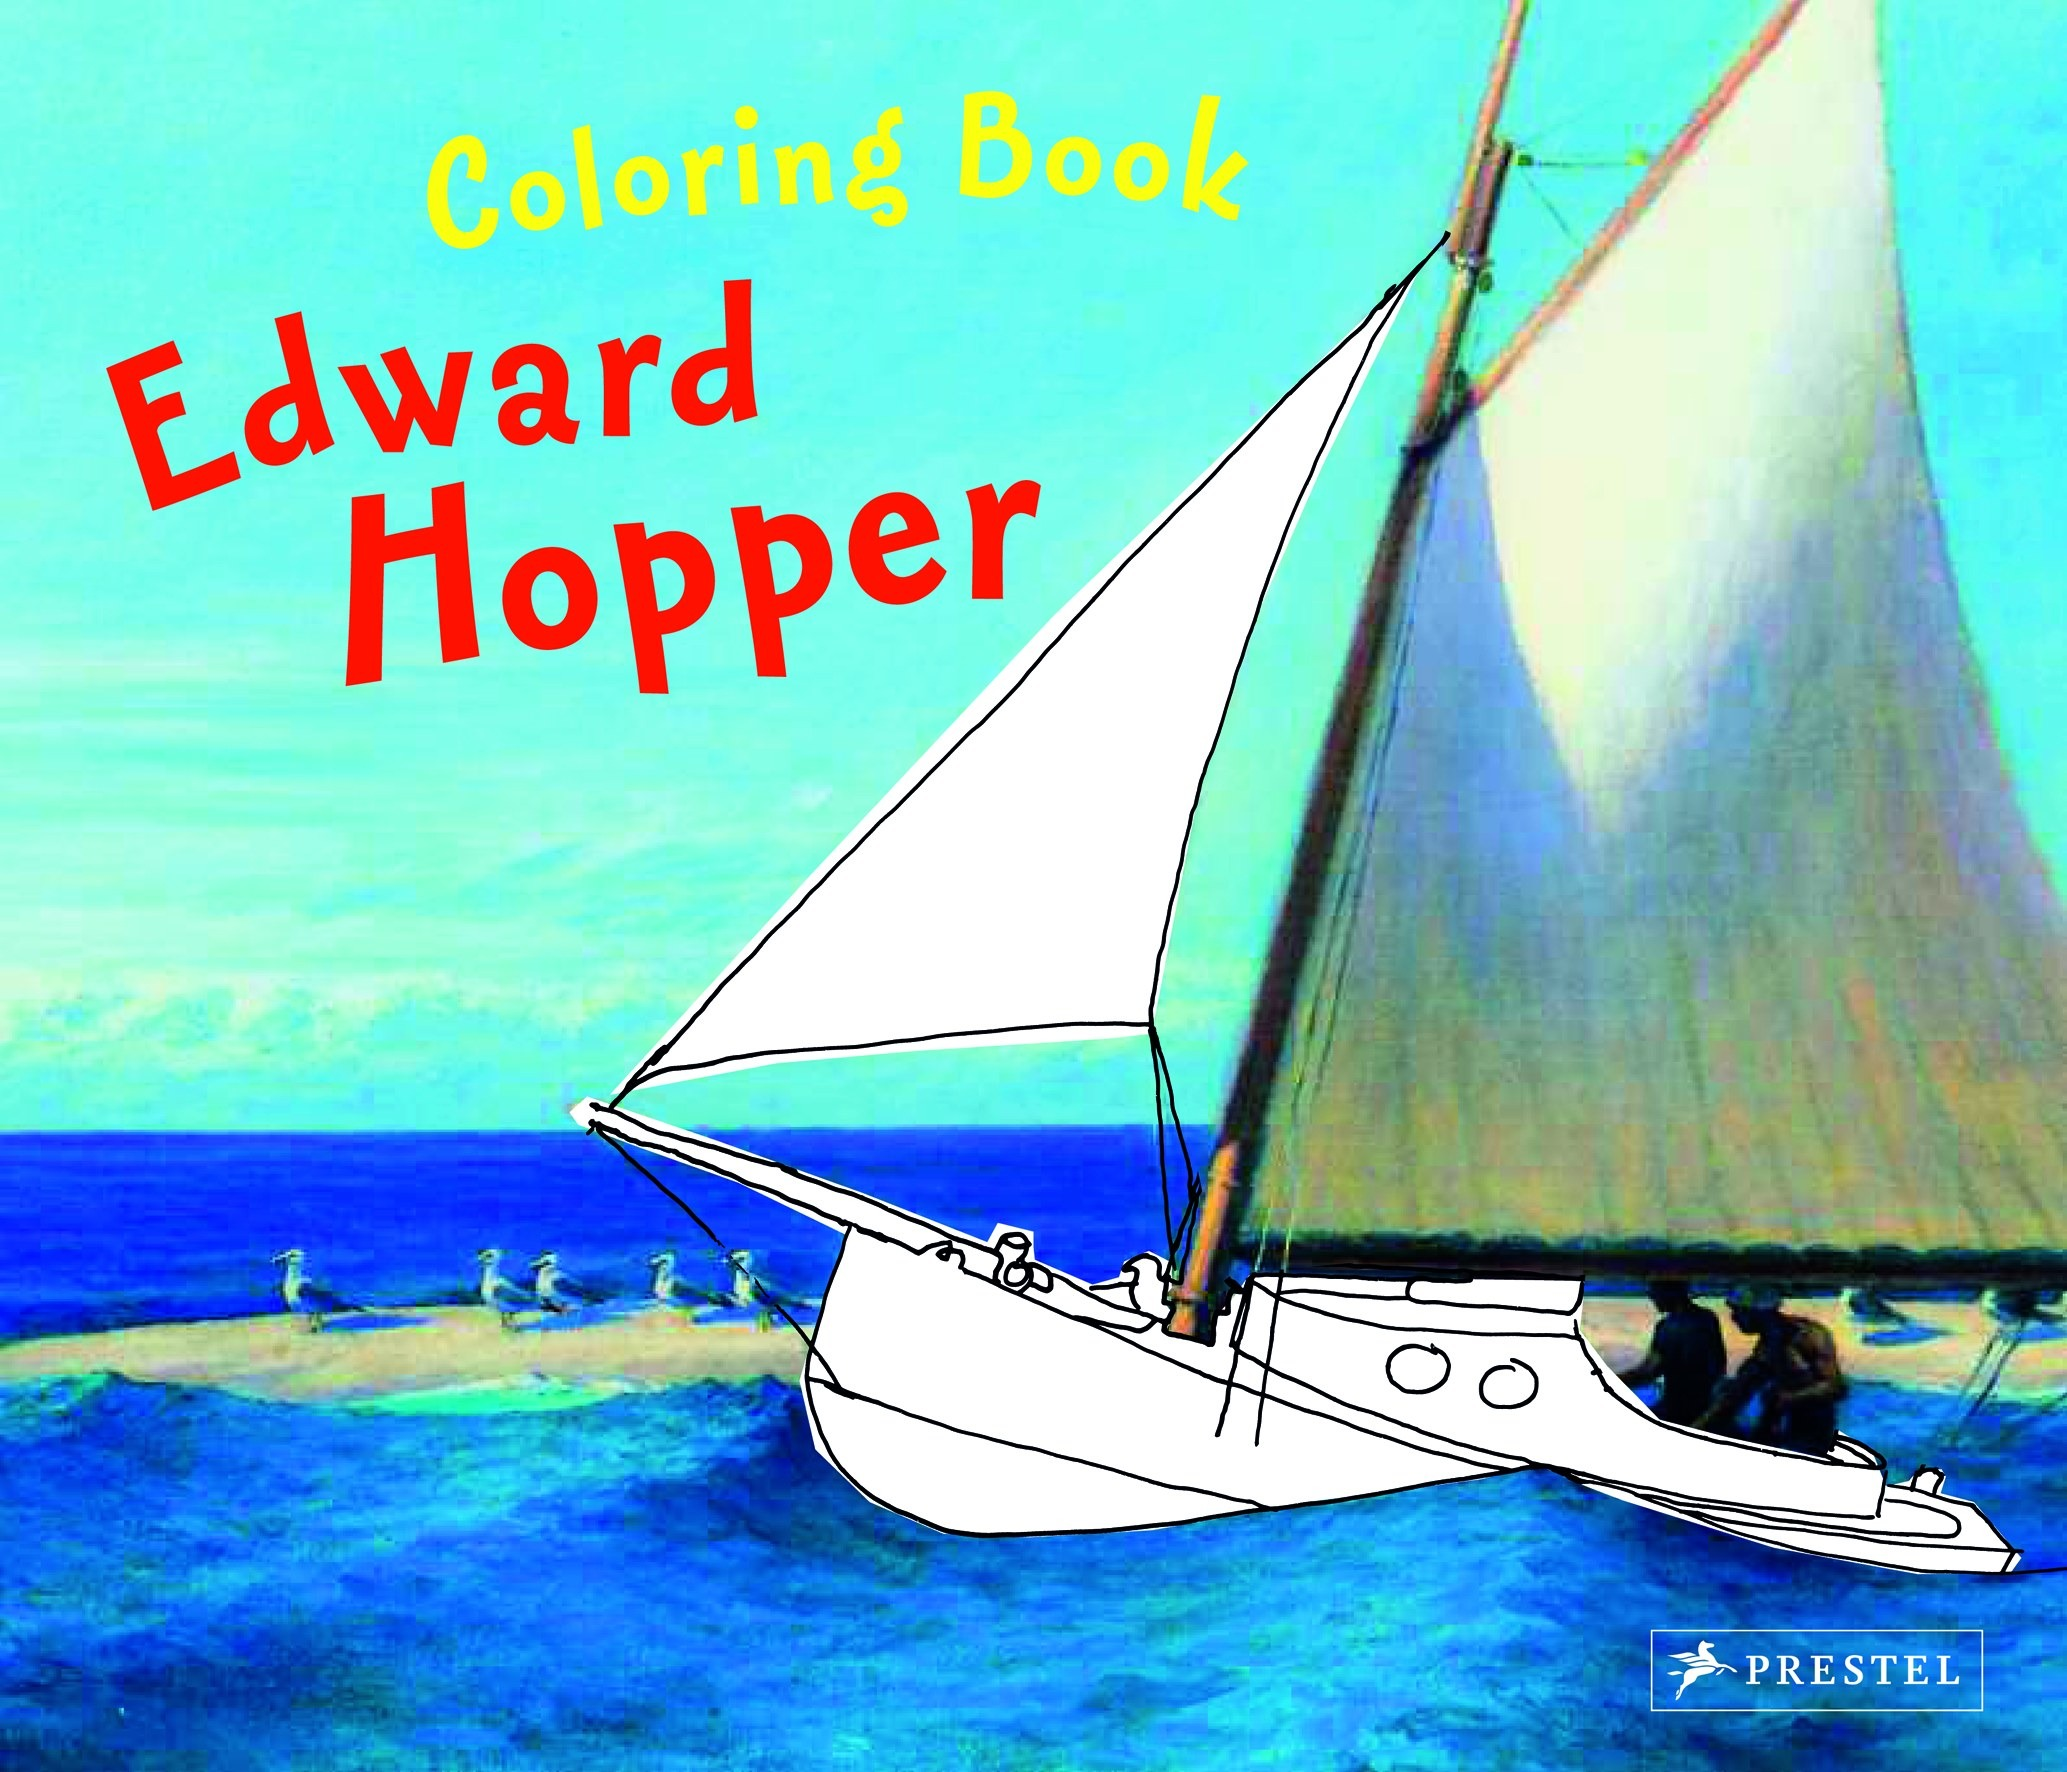 Doris Kutschbach Coloring Book Edward Hopper Prestel Publishing